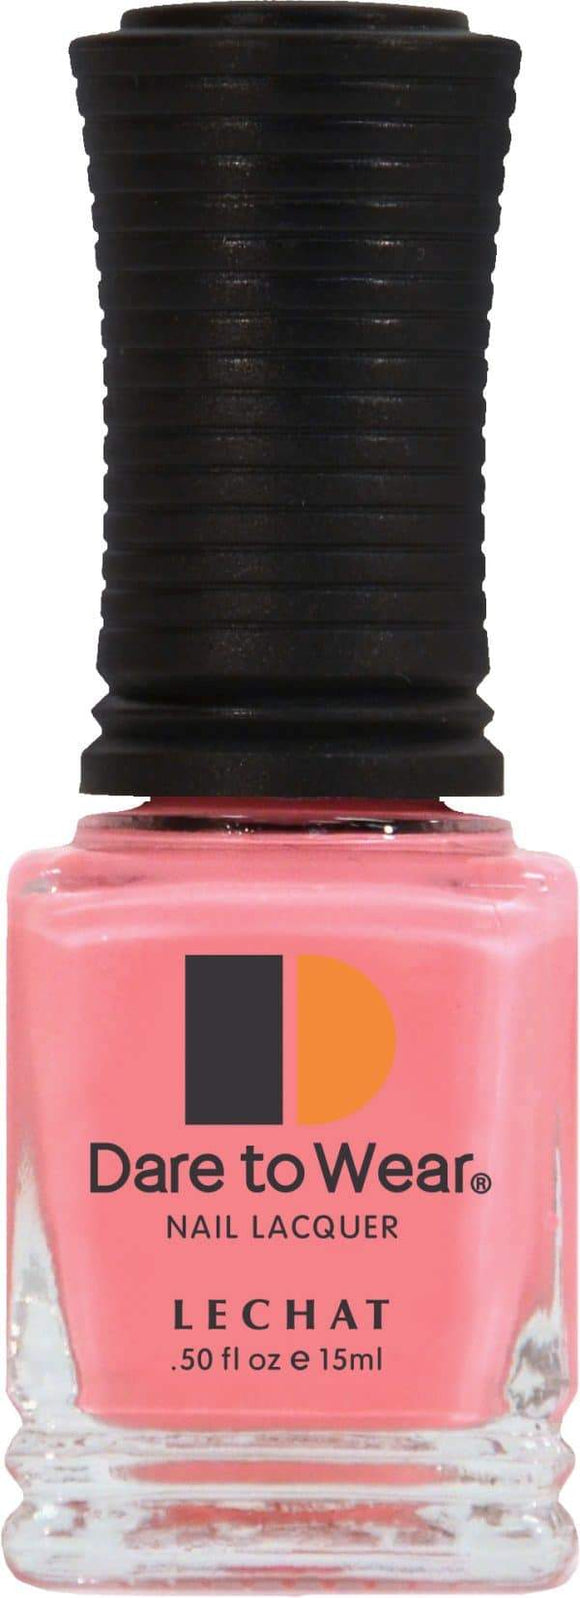 Lechat Nail Lacquers DW25 Pink Lady